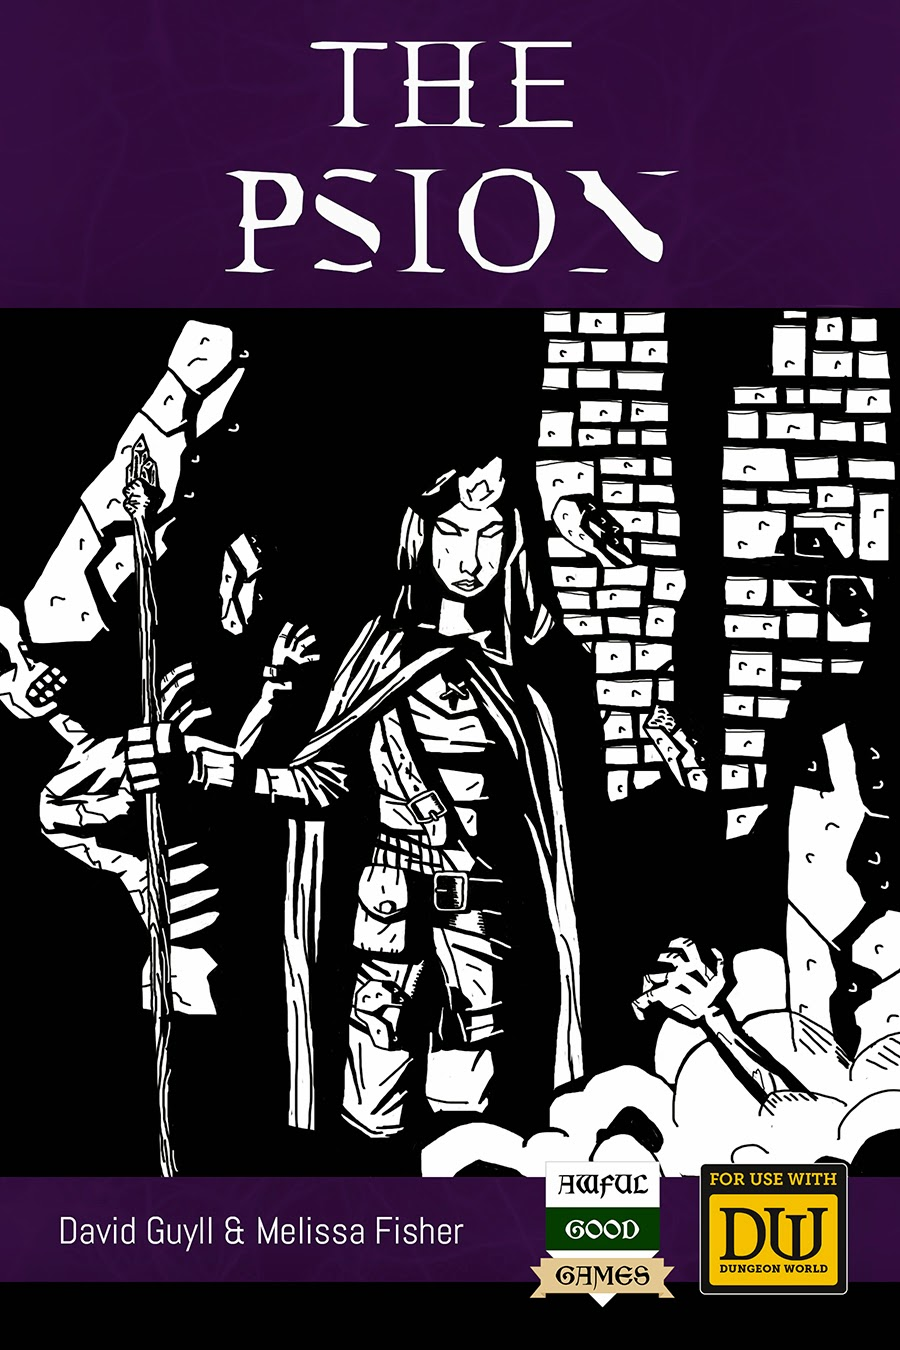 Dungeon World: The Psion - Points of Light